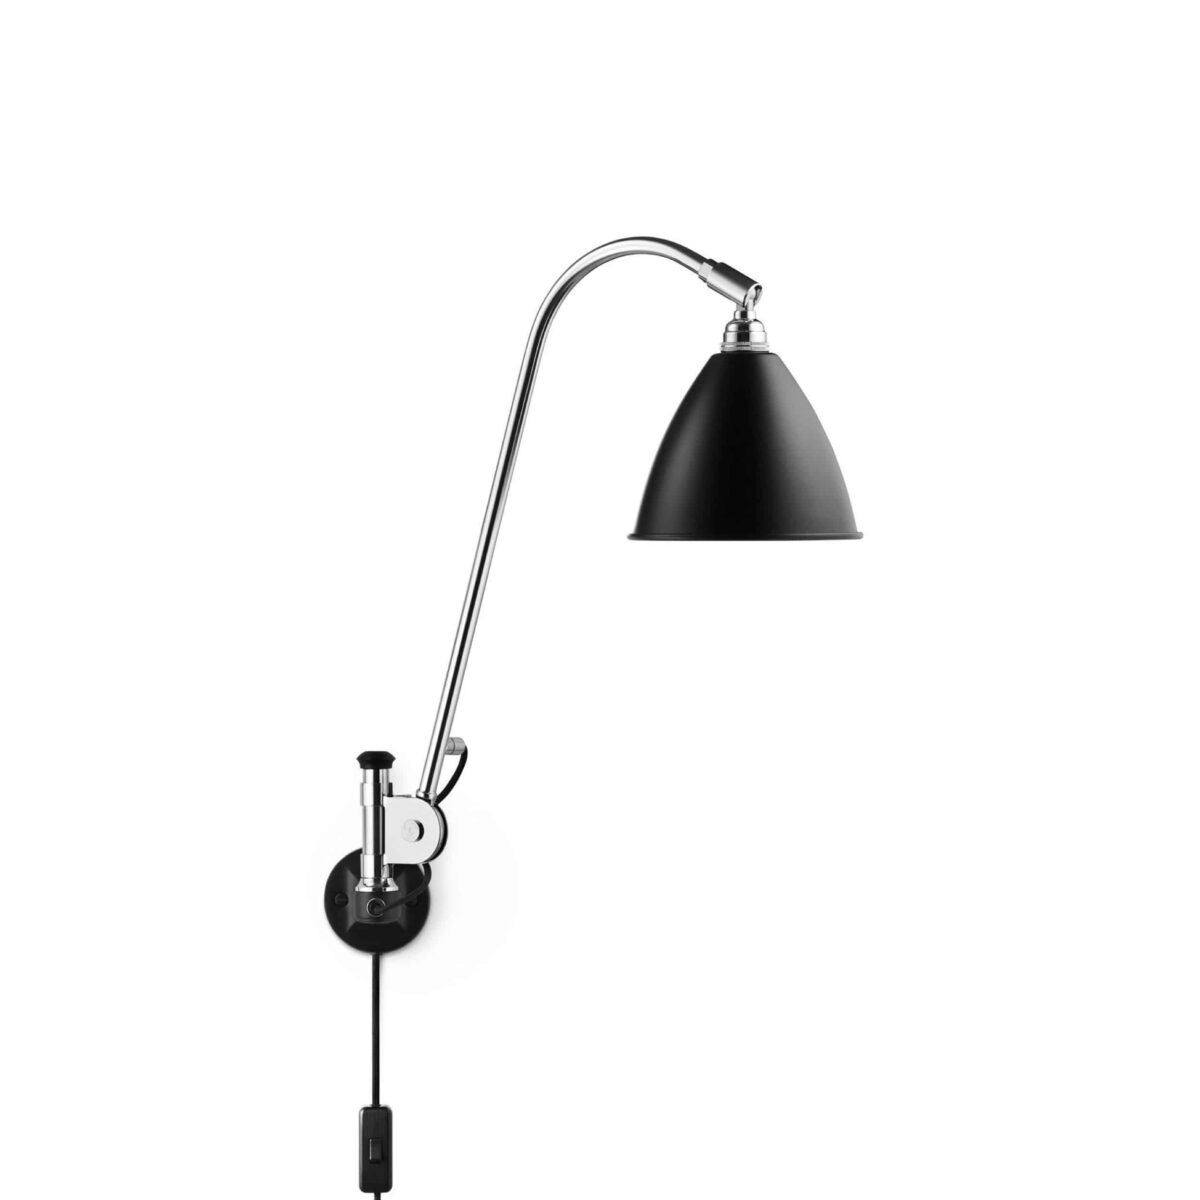 gubi-bestlite-wall-lamp-BL6-black-chrome-01